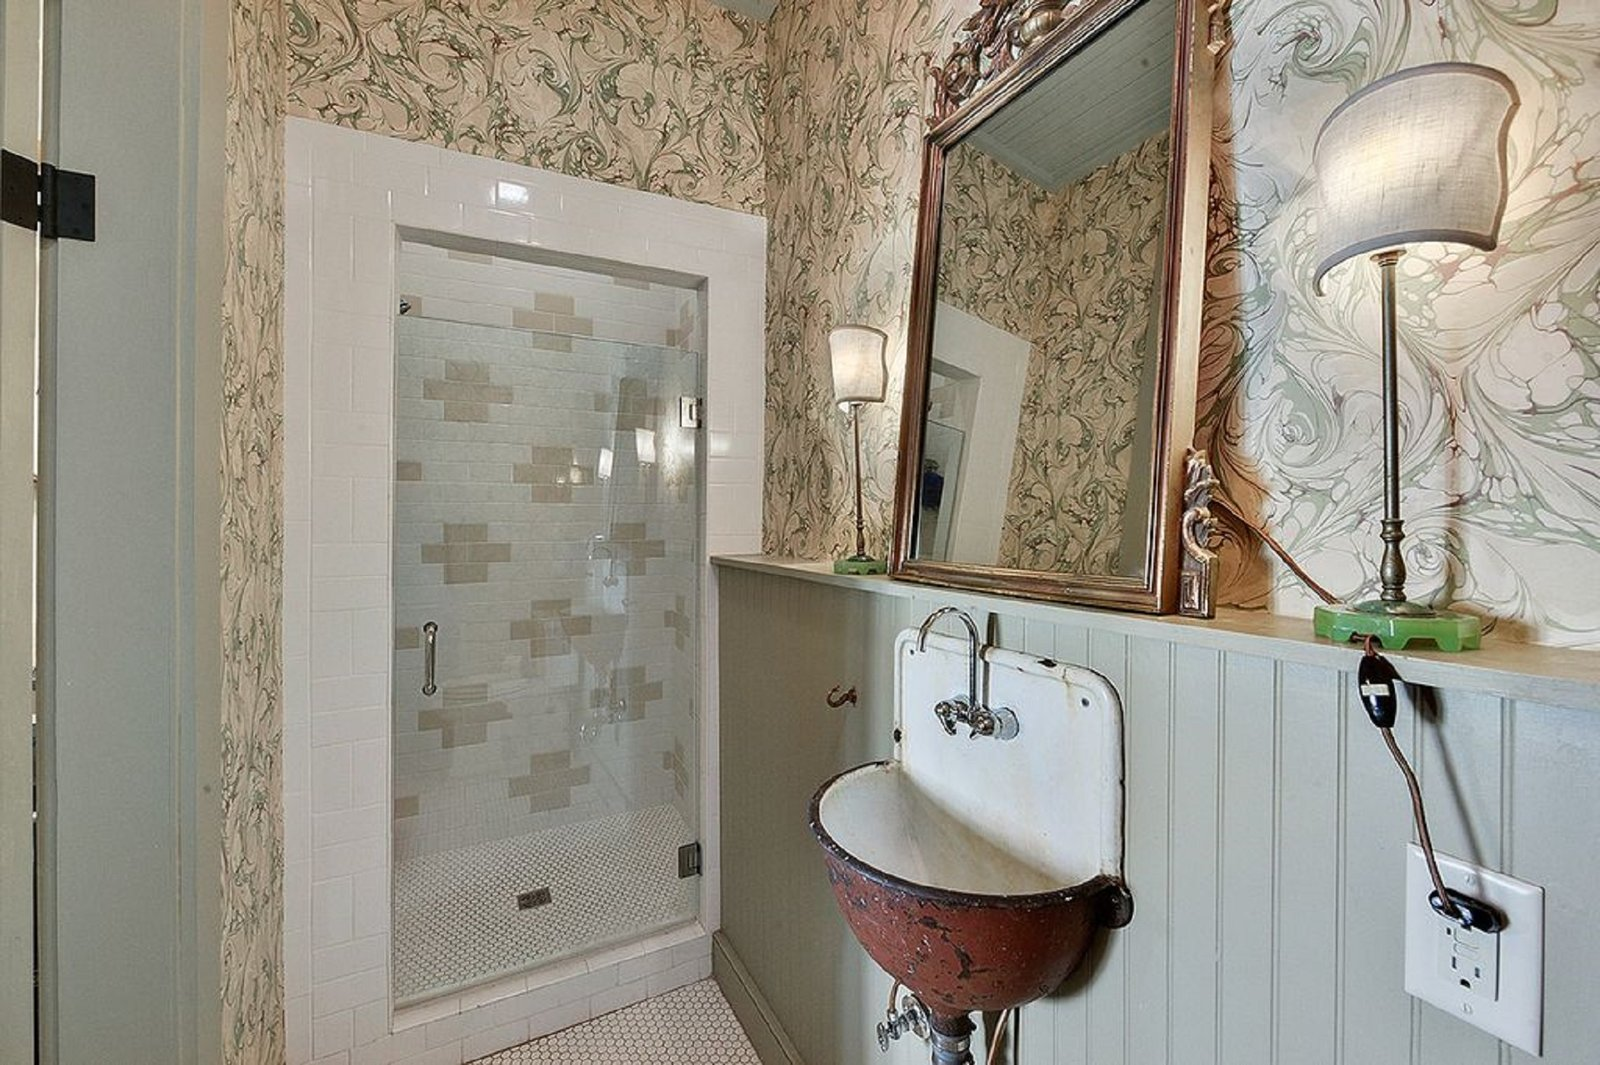 Bath Room and Enclosed Shower The tiled shower awaits you.  Antoine Bordeaux House